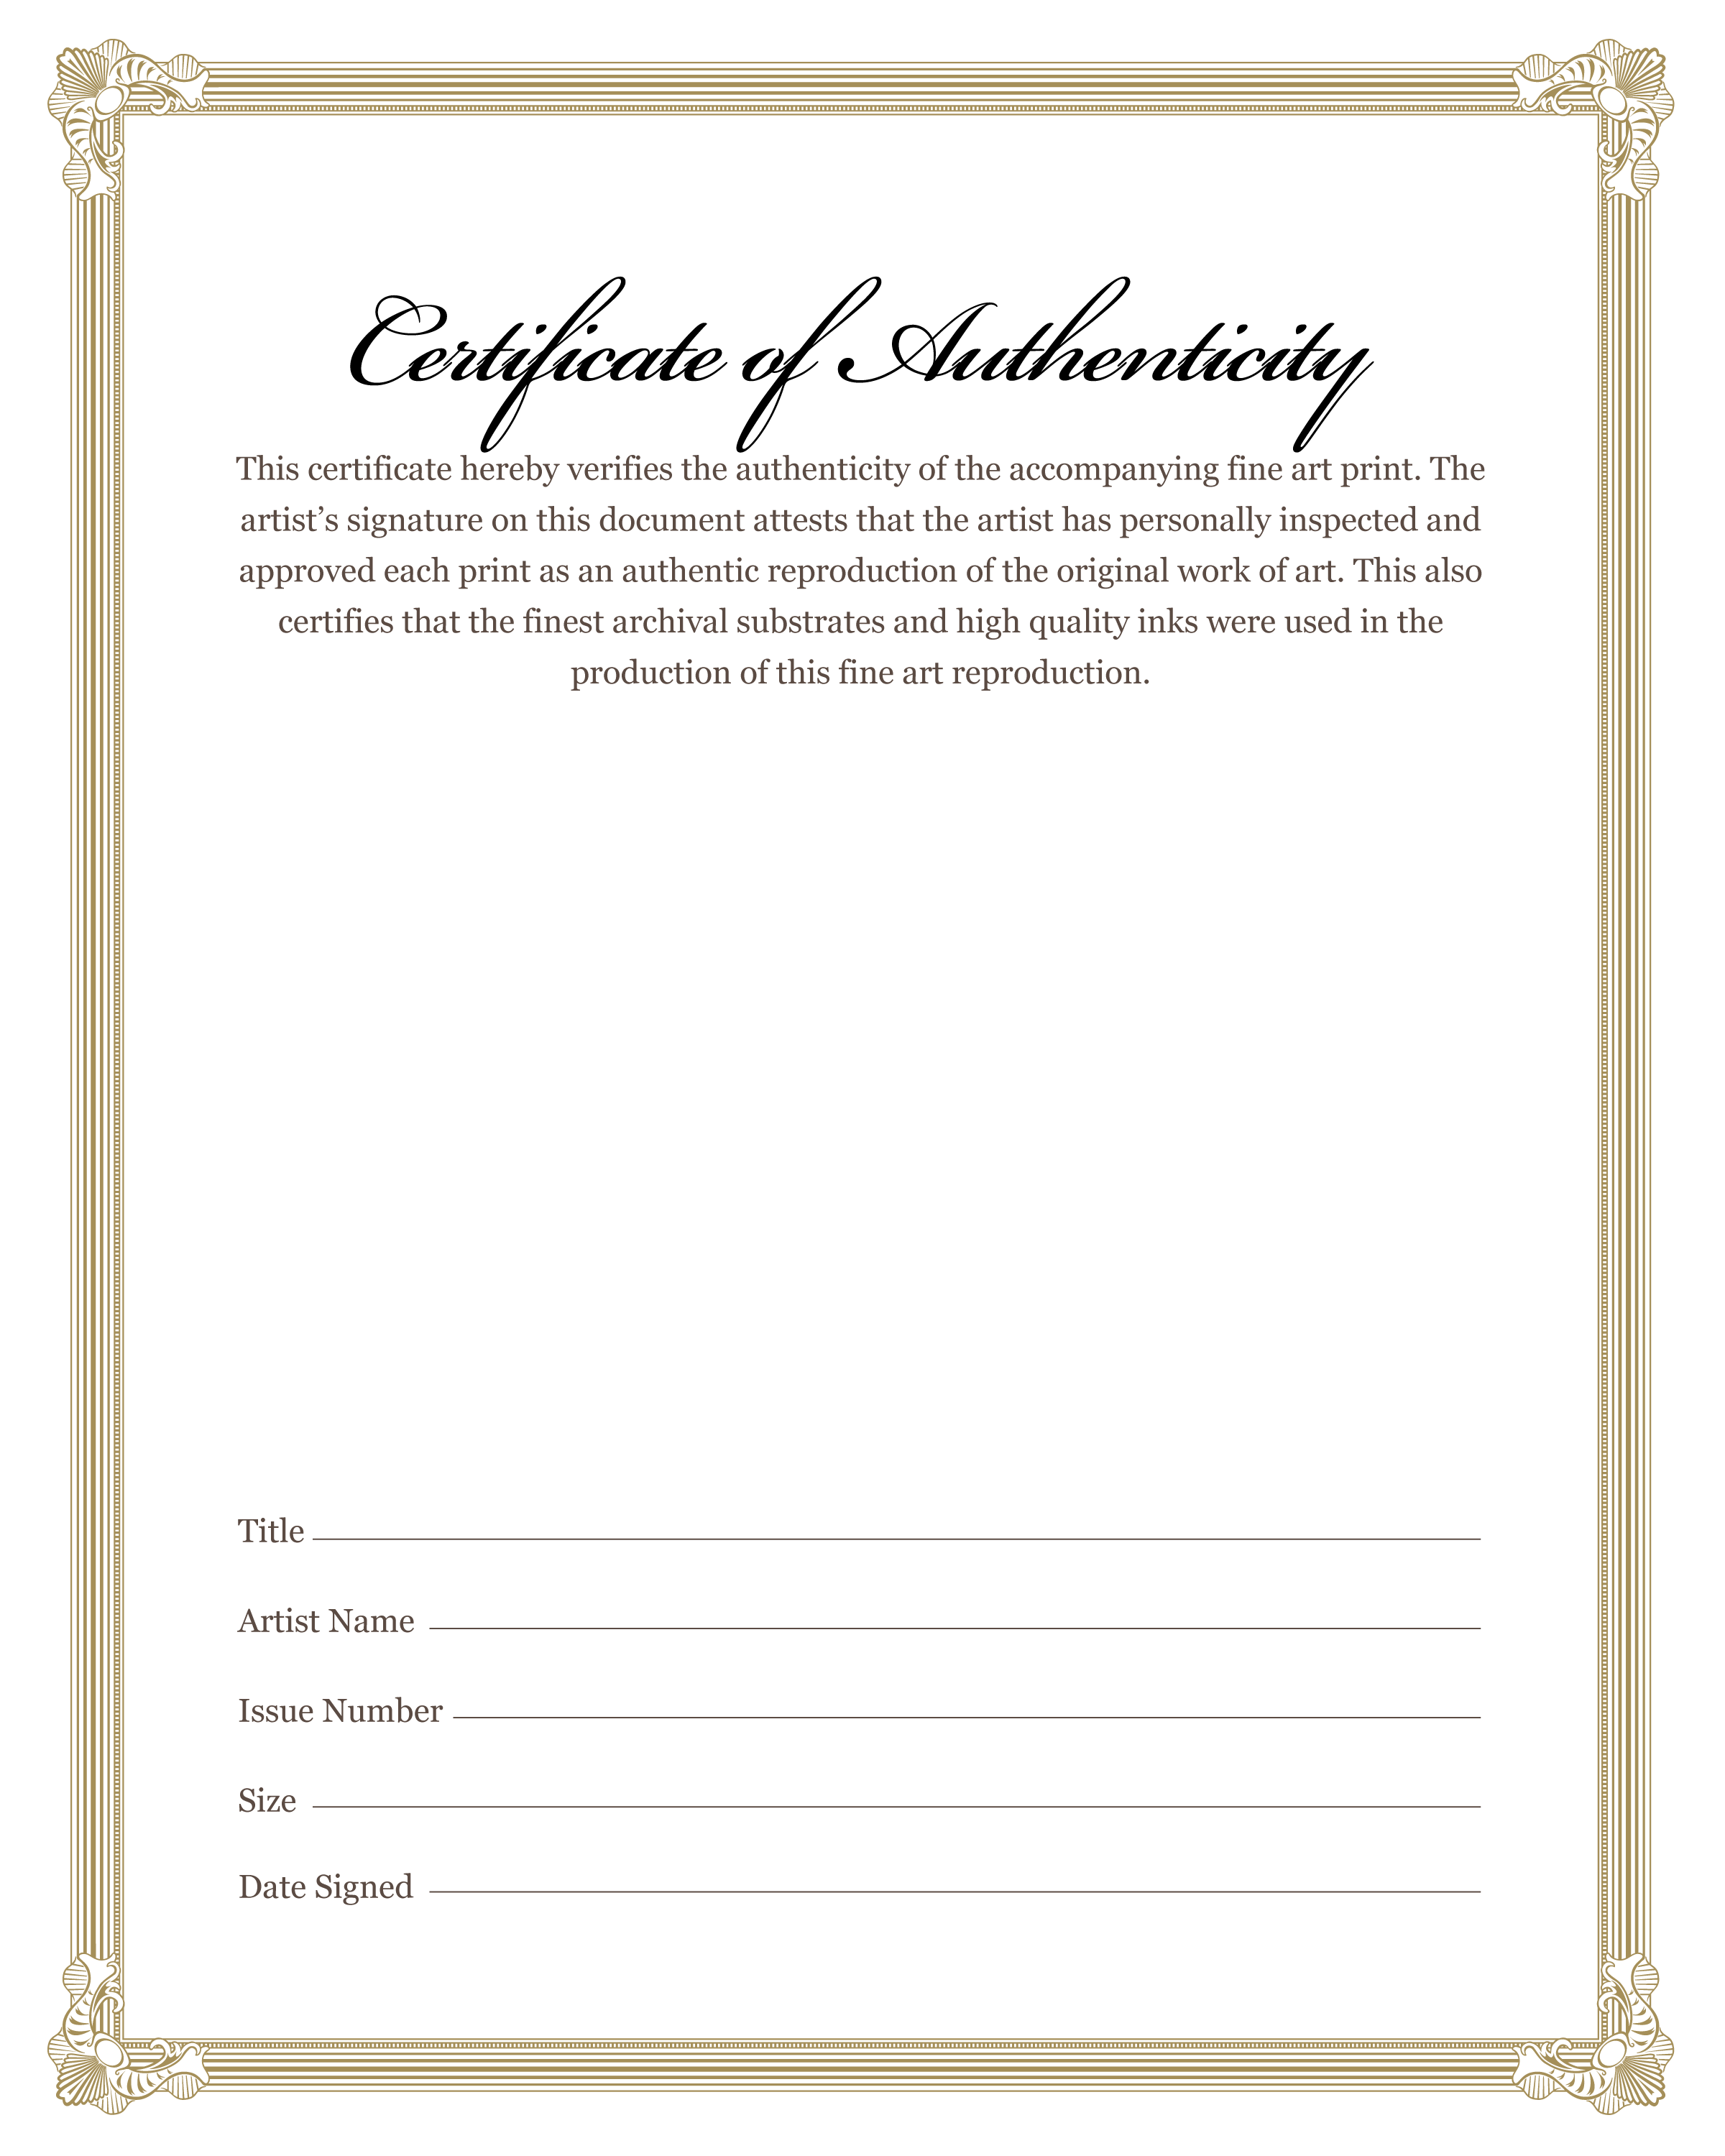 certificates of authenticity templates - american art editions orderproducts